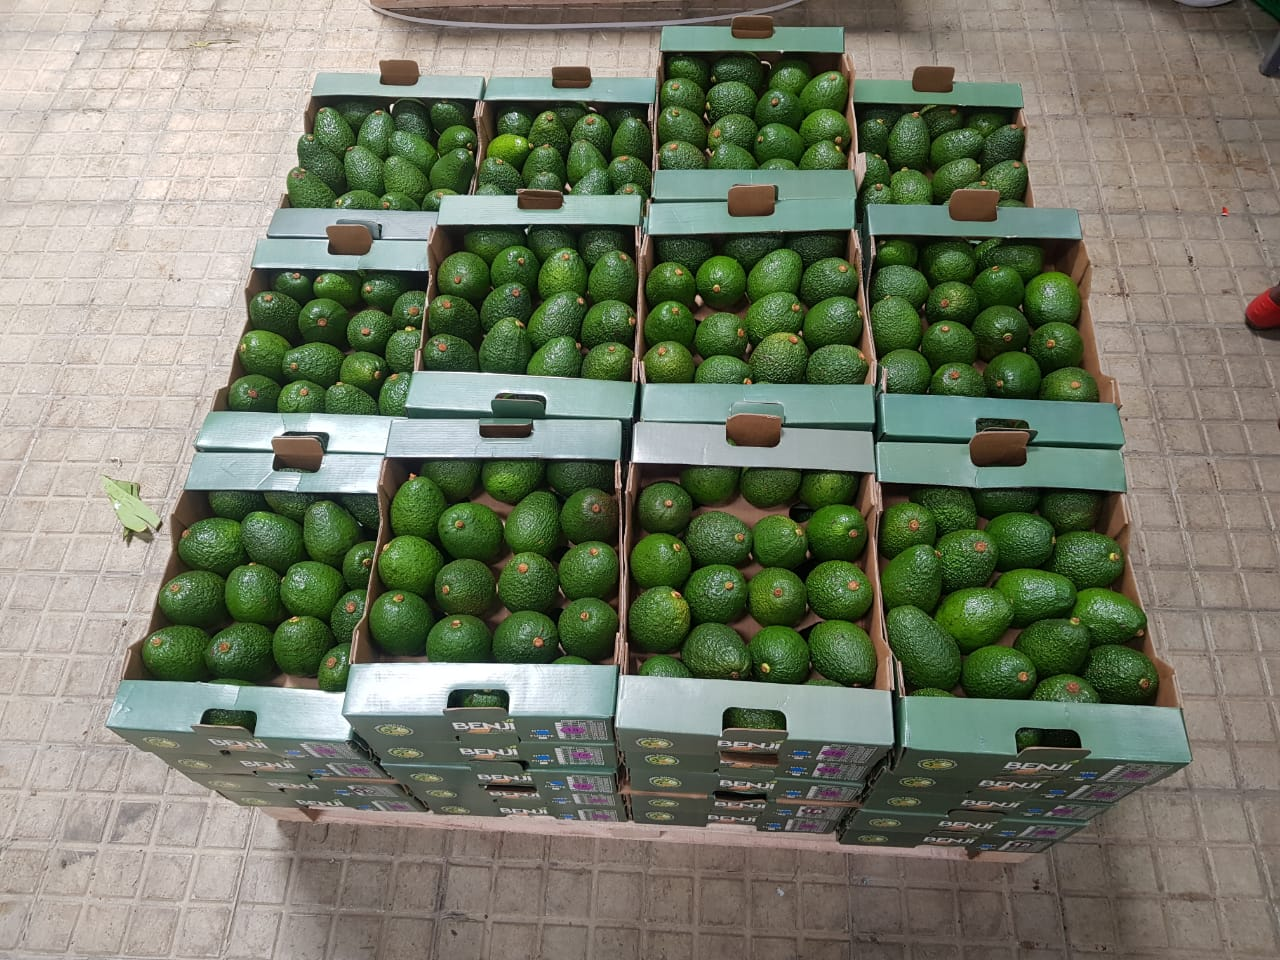 Boxes of harvested hass avocadoes in Kenya - Beva Fruits International (BFI)